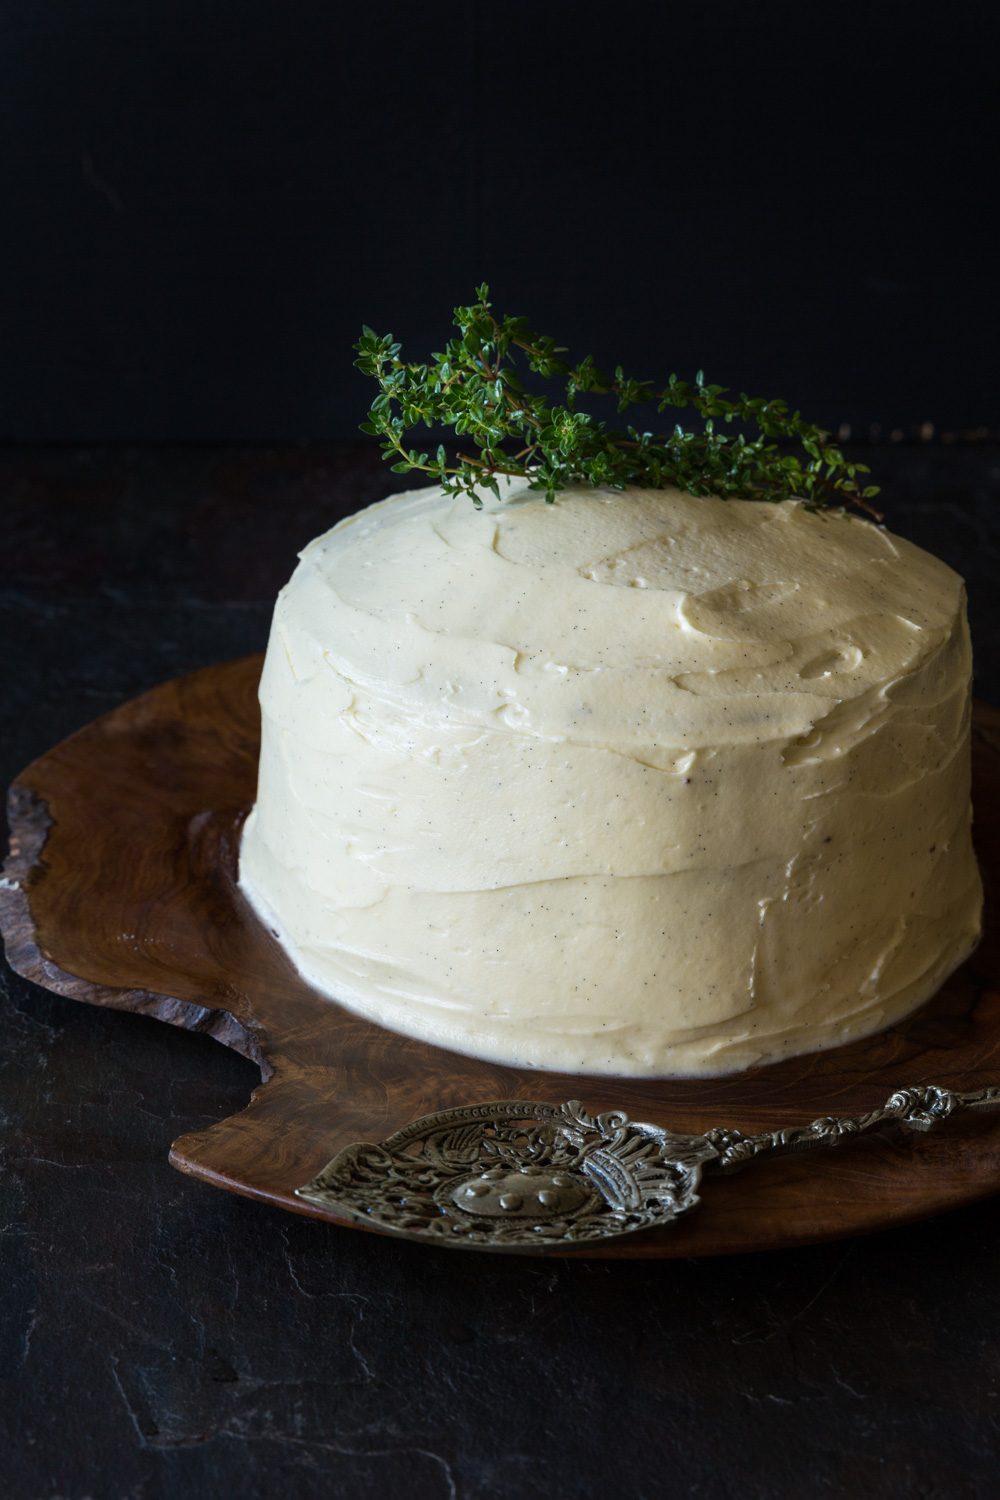 Lemon and thyme poppy seed cake